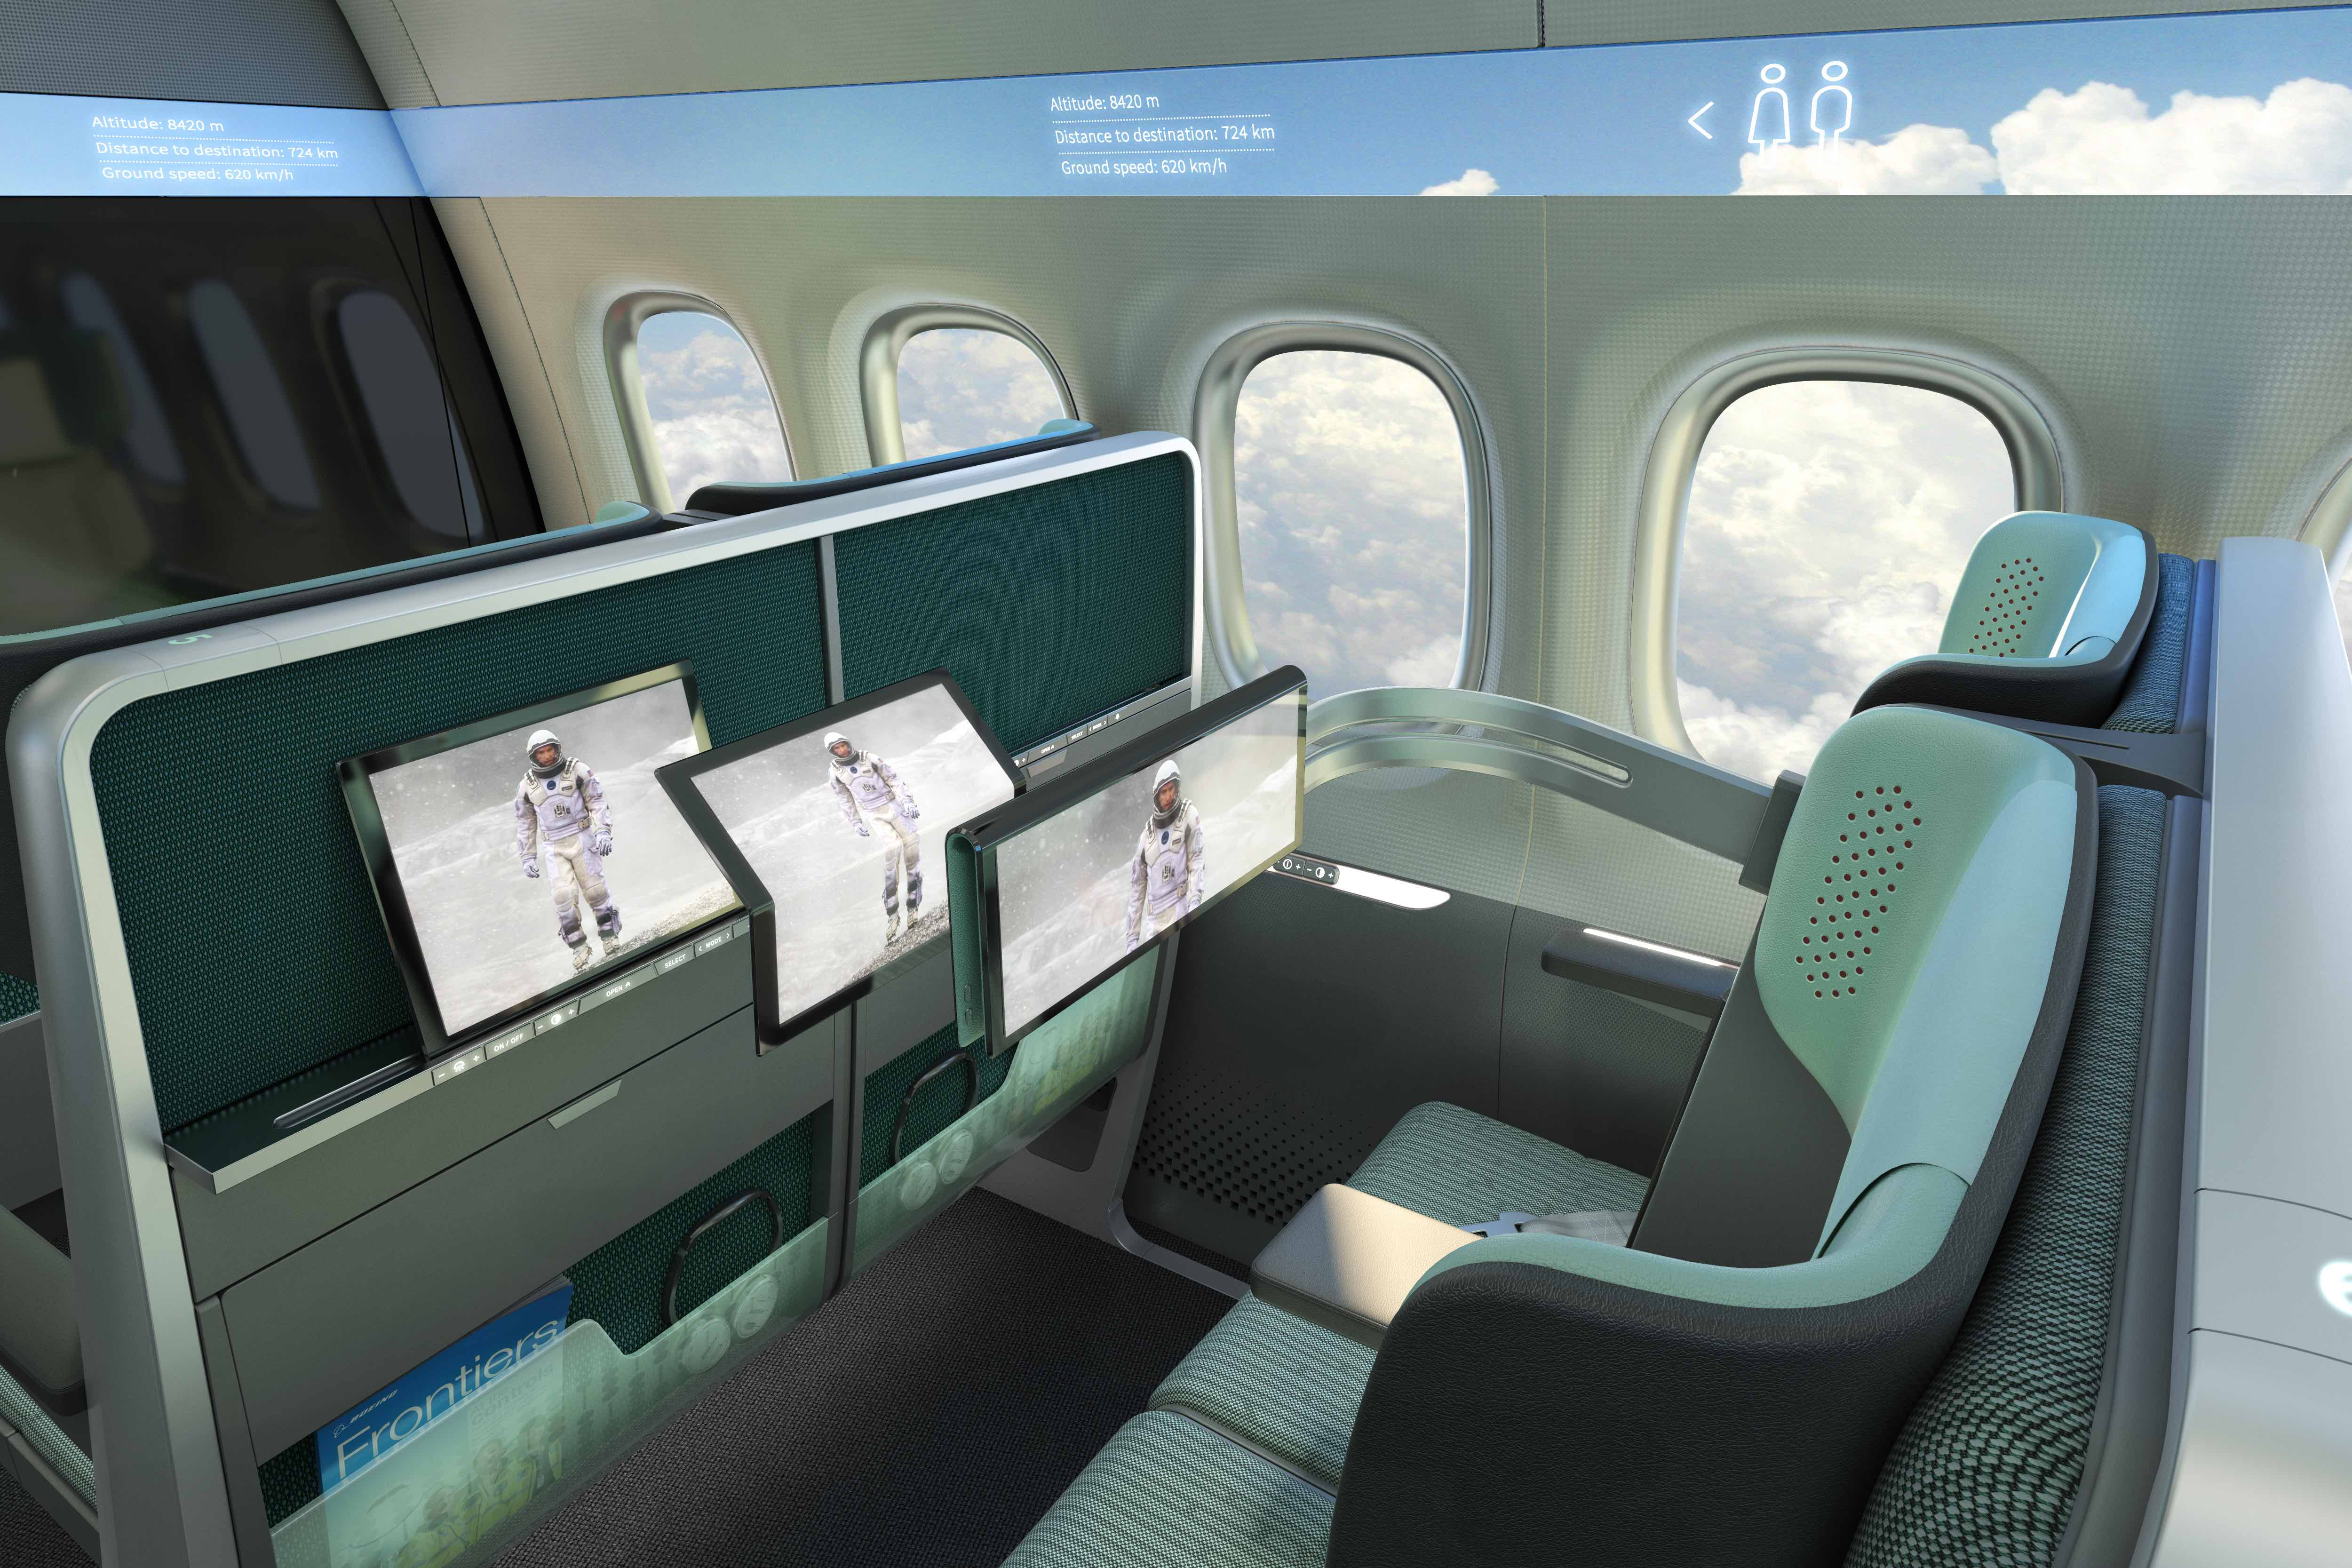 Airline Futures Concept showing Tablet folding to half size